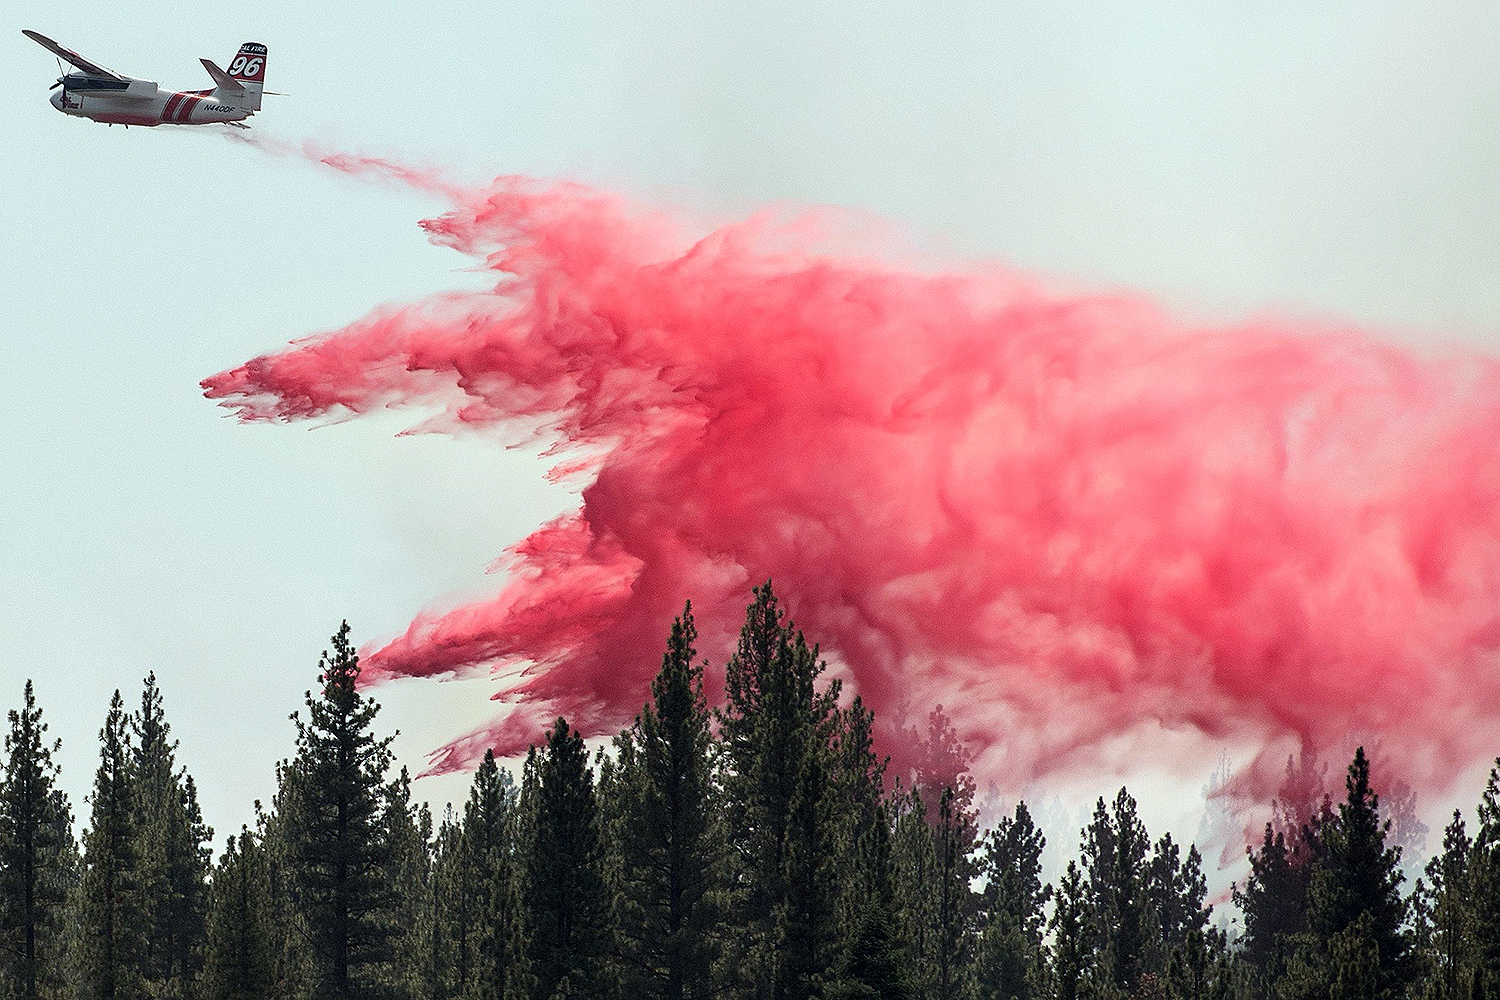 A Cal Fire aircraft drops fire retardant over the Hog Fire, about 5 miles from Susanville, California, on July 21. JOSH EDELSON/AFP via Getty Images